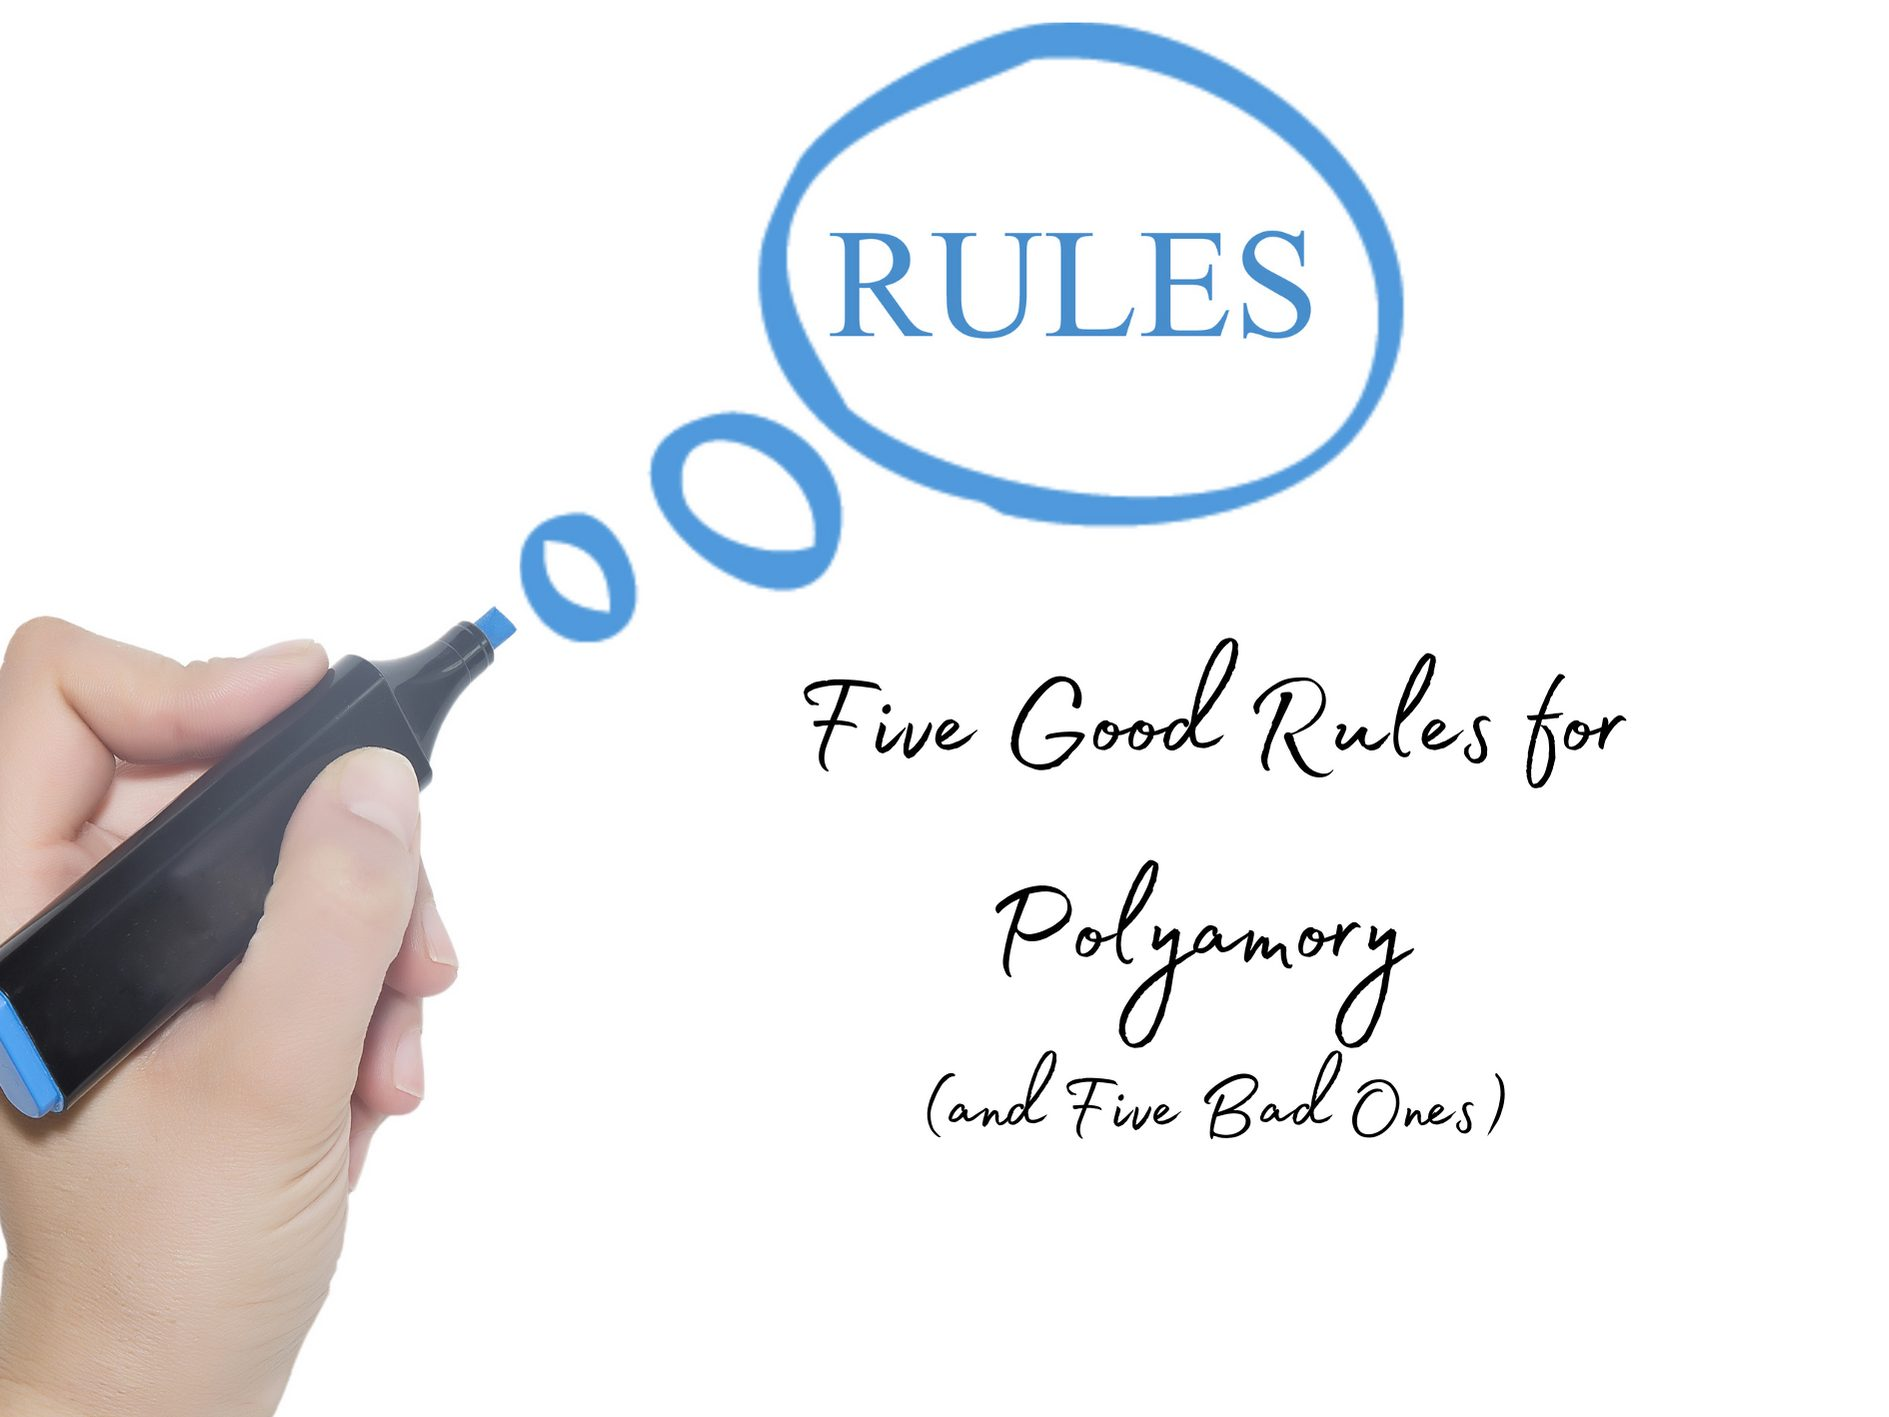 Five Good Rules for Polyamory (and Five Bad Ones)